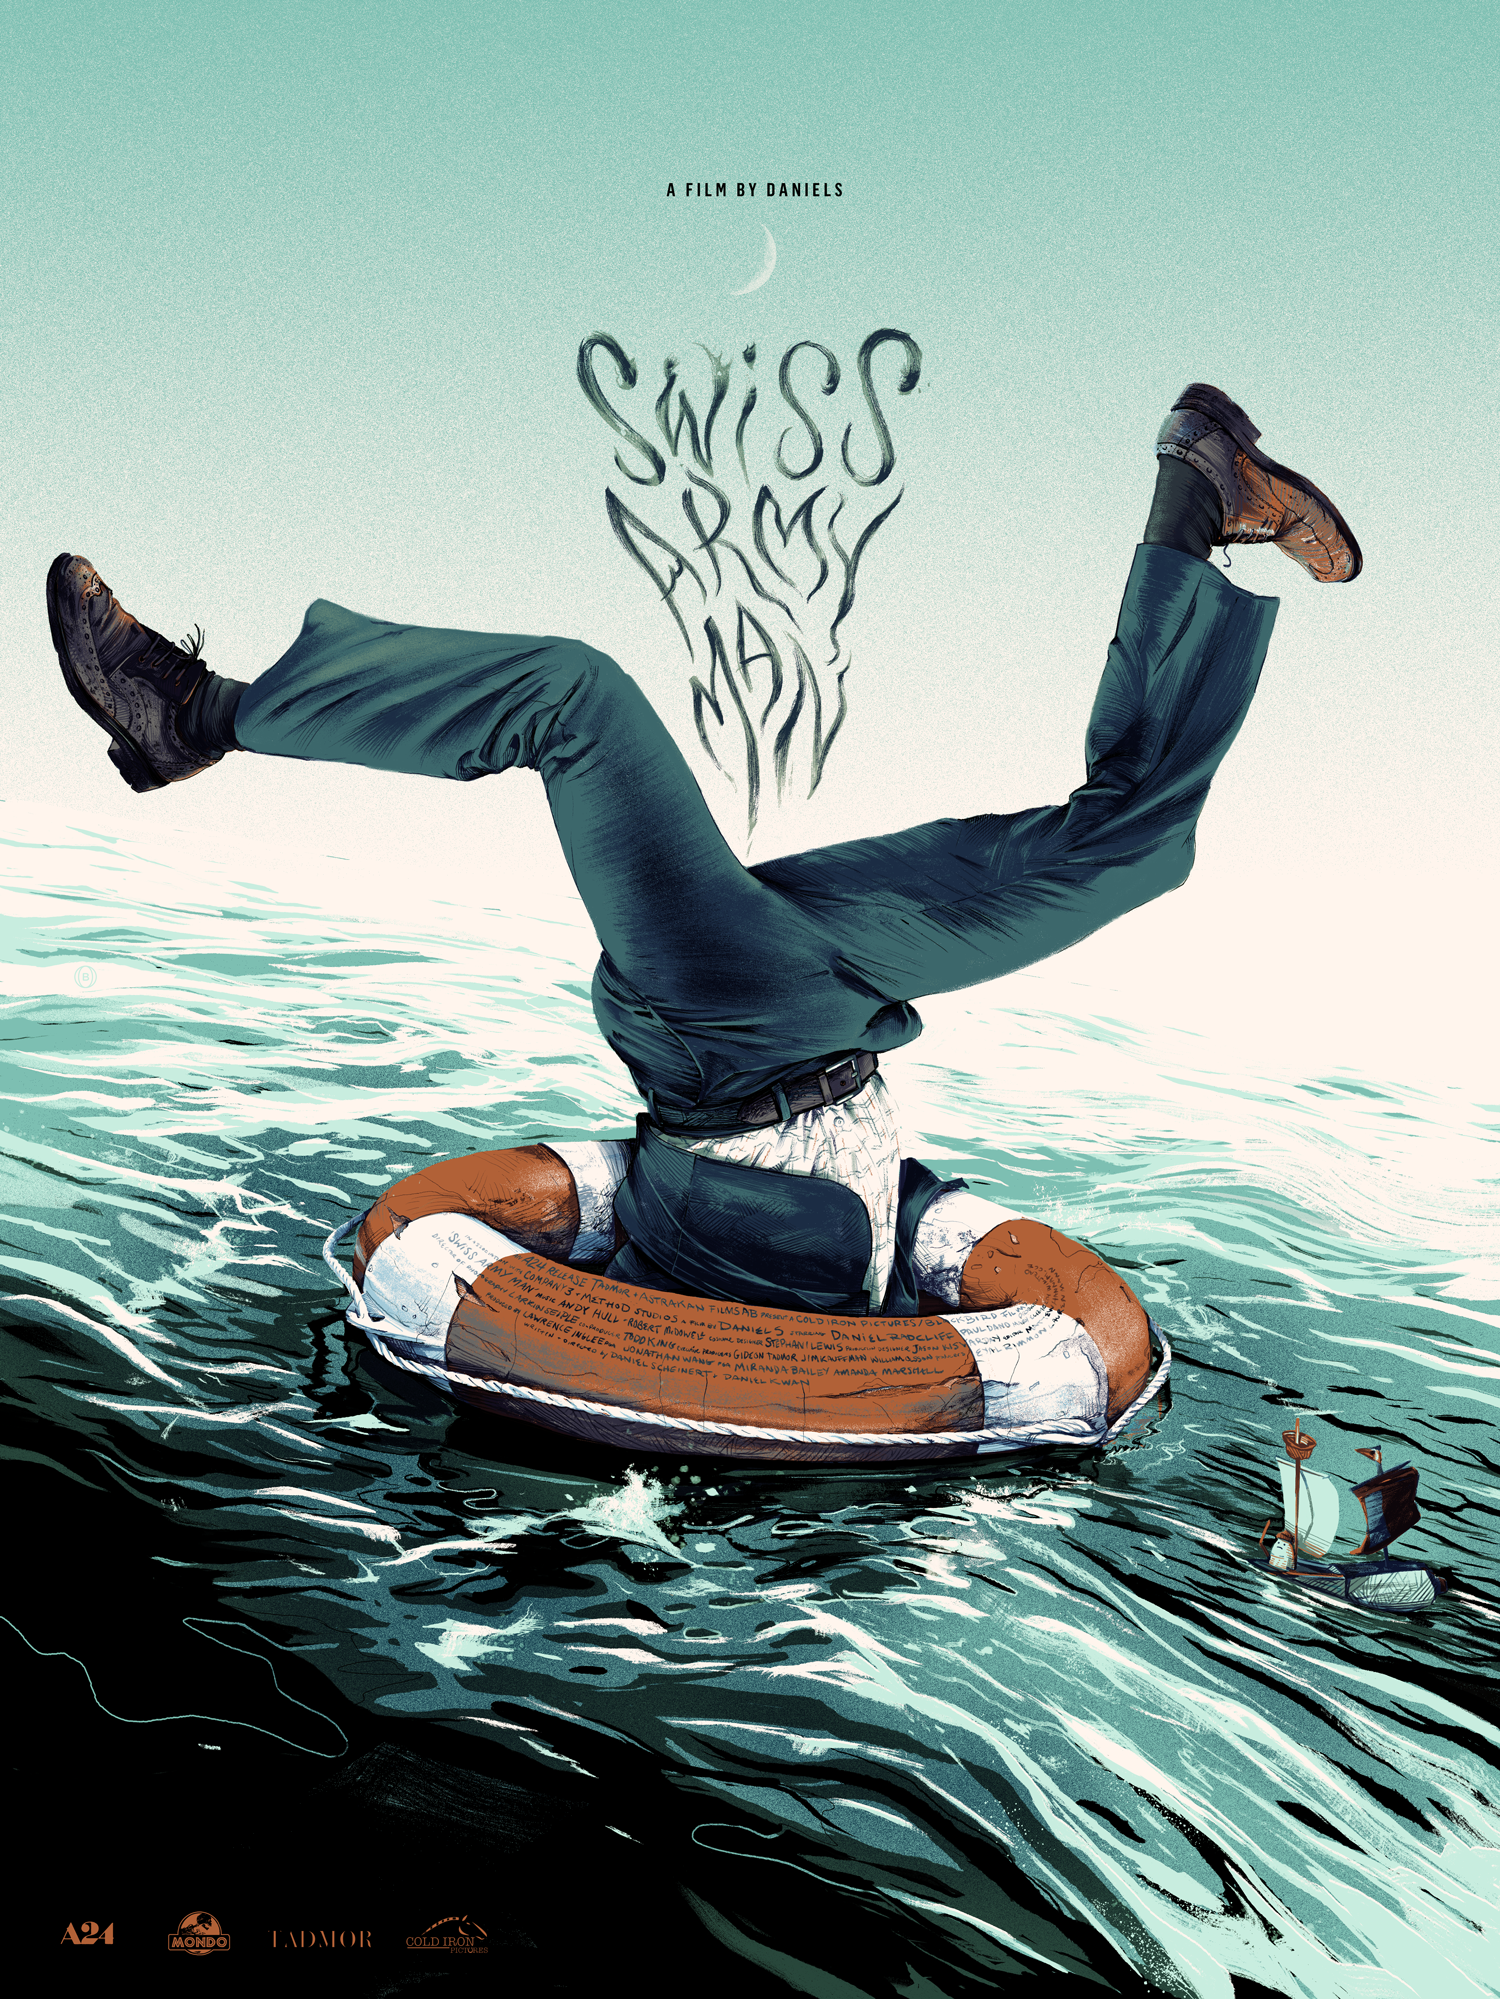 SWISS ARMY MAN - Mondo / A24limited edition, screen-printed film poster.available in the shop